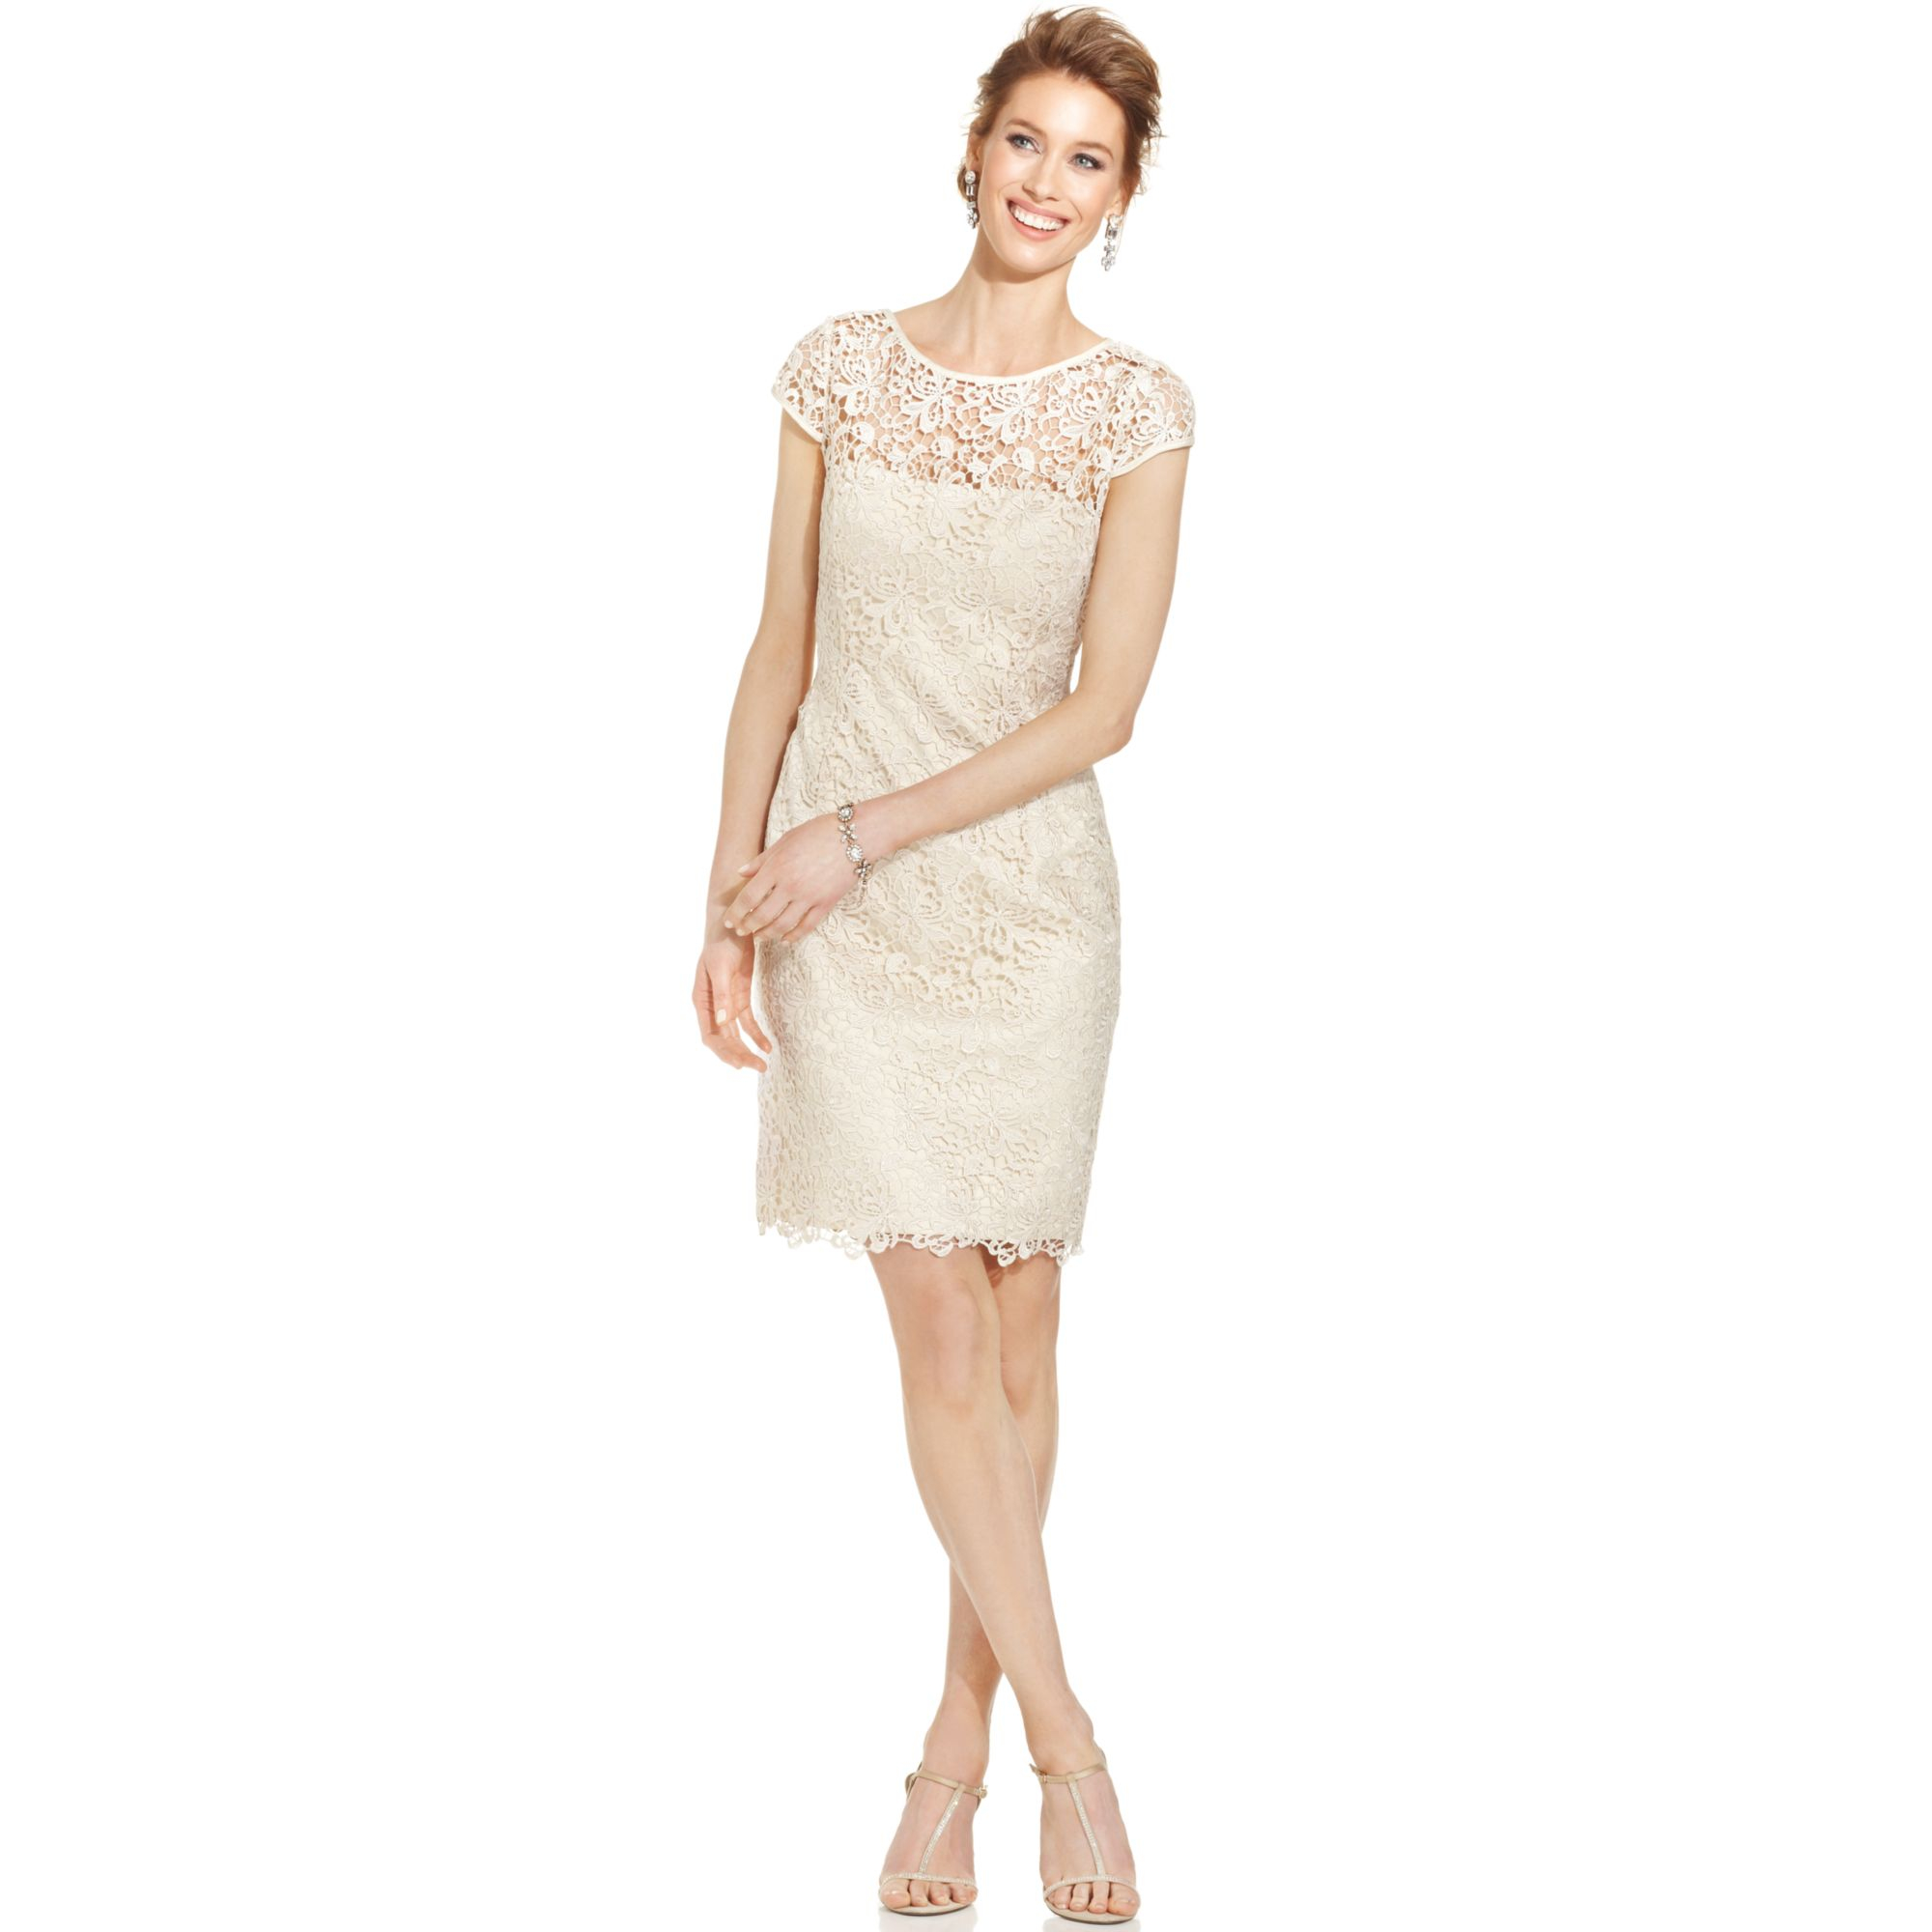 Lyst - Adrianna Papell Petite Capsleeve Illusion Lace Sheath in Natural